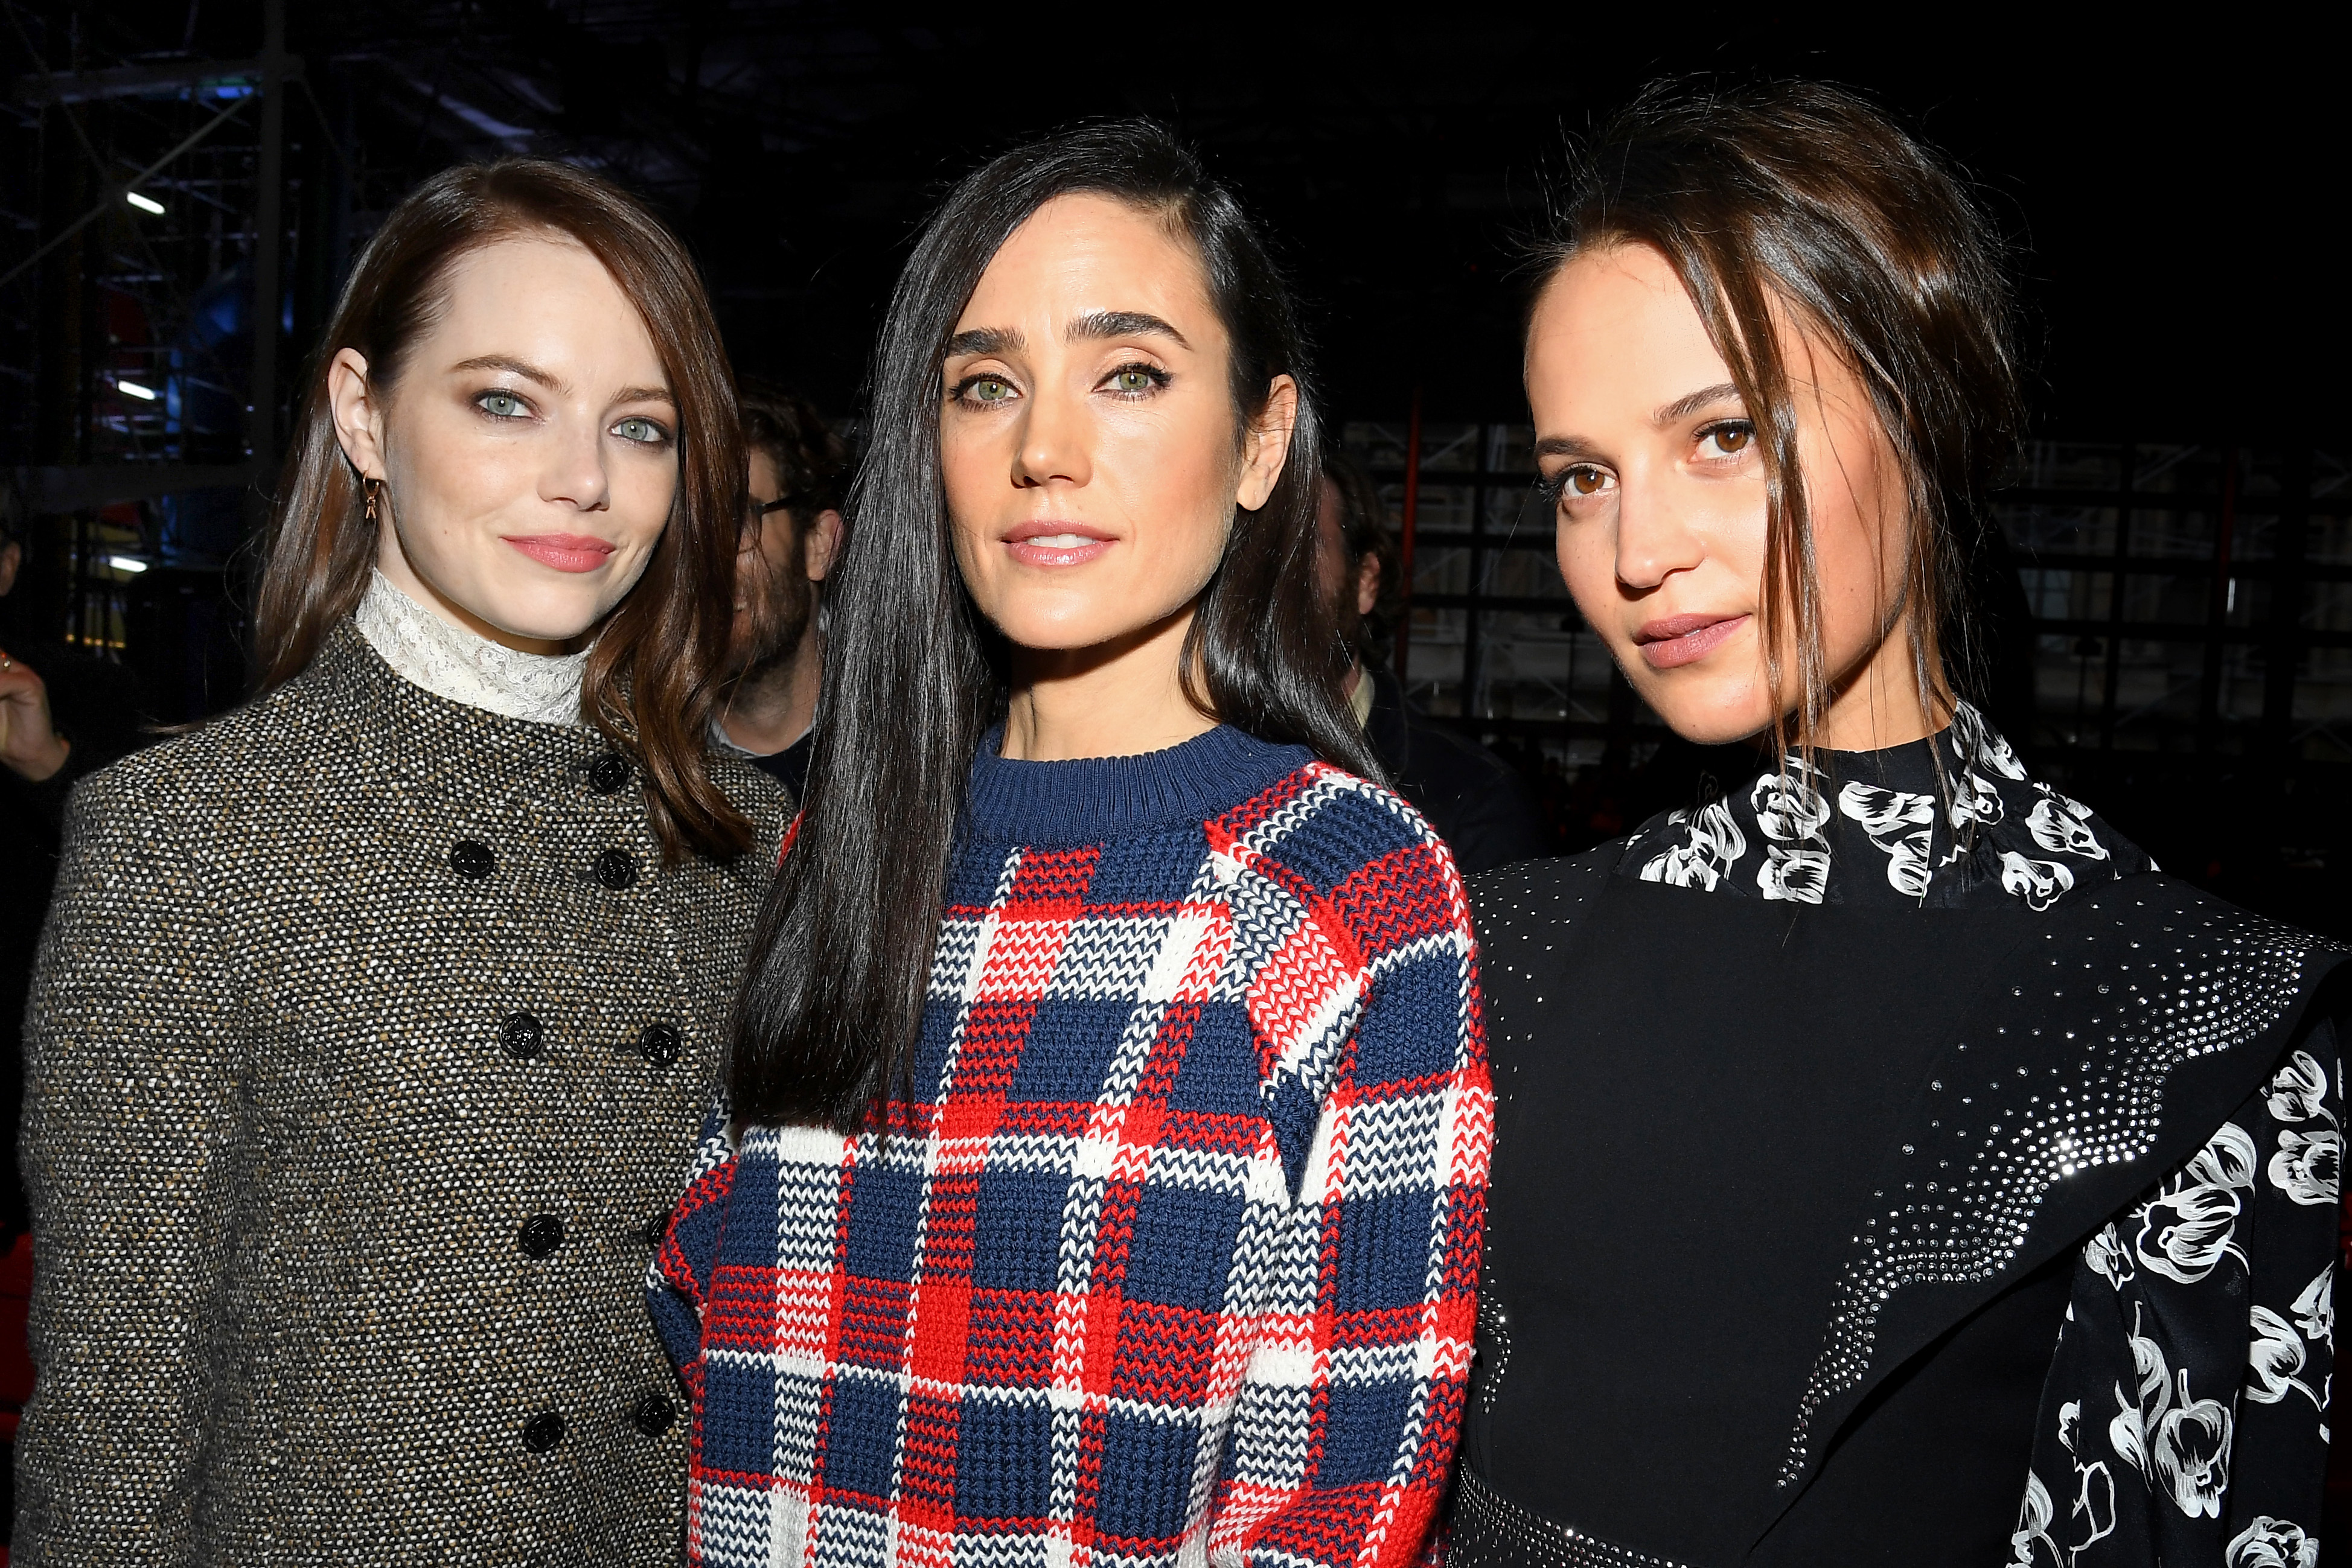 Emma Stone, Jennifer Connelly and Alicia Vikander attend the Louis Vuitton show during Paris Fashion Week on March 5, 2019.